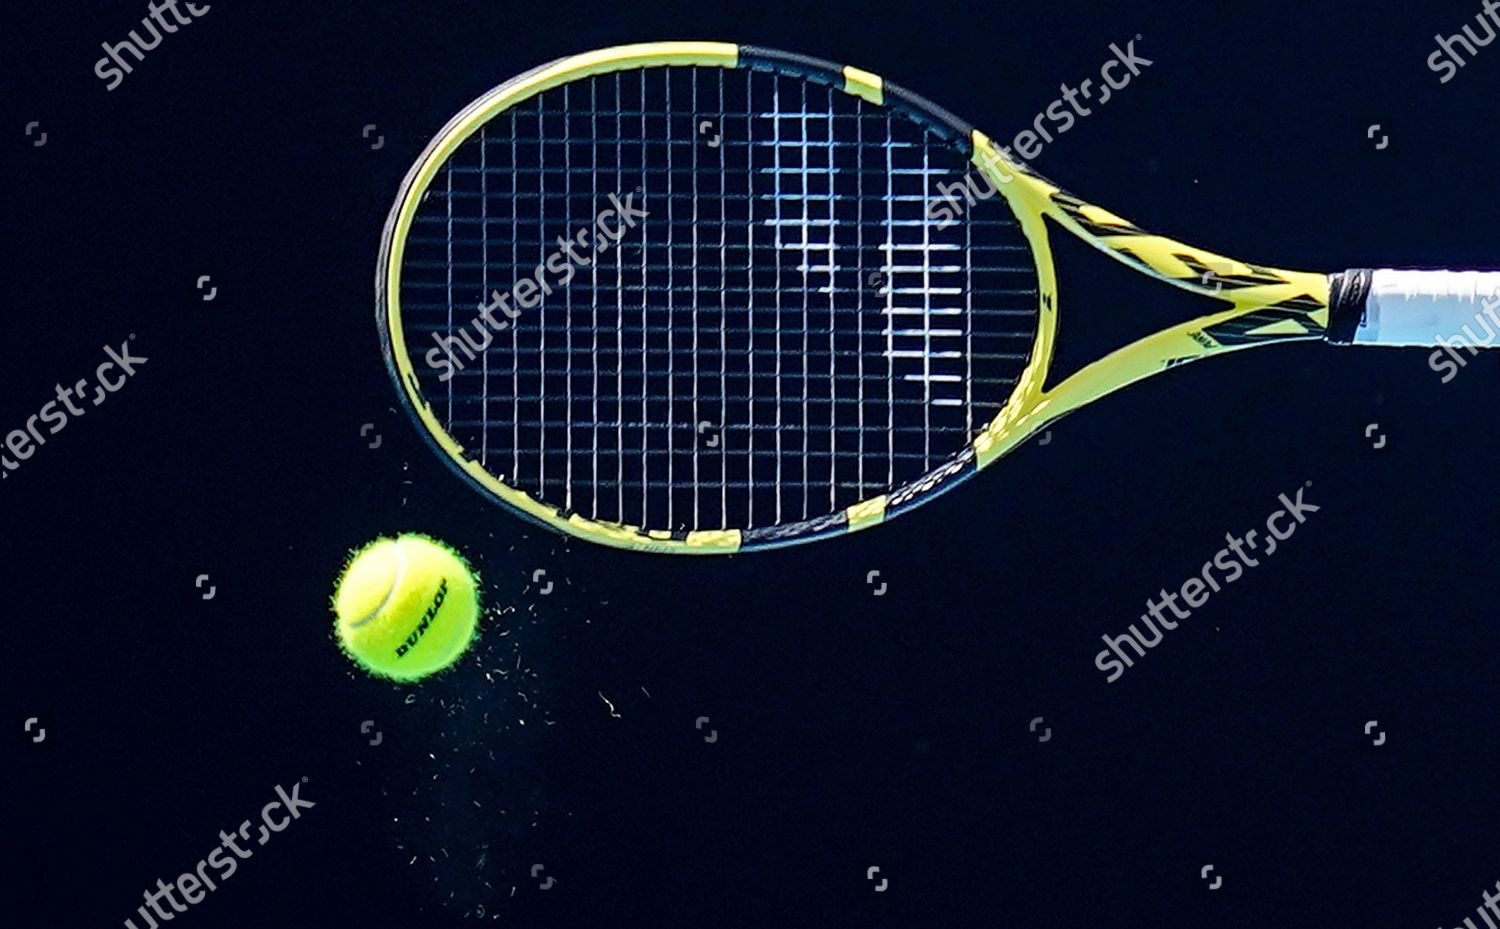 General View Ao Tennis Ball Tennis Racquet Editorial Stock